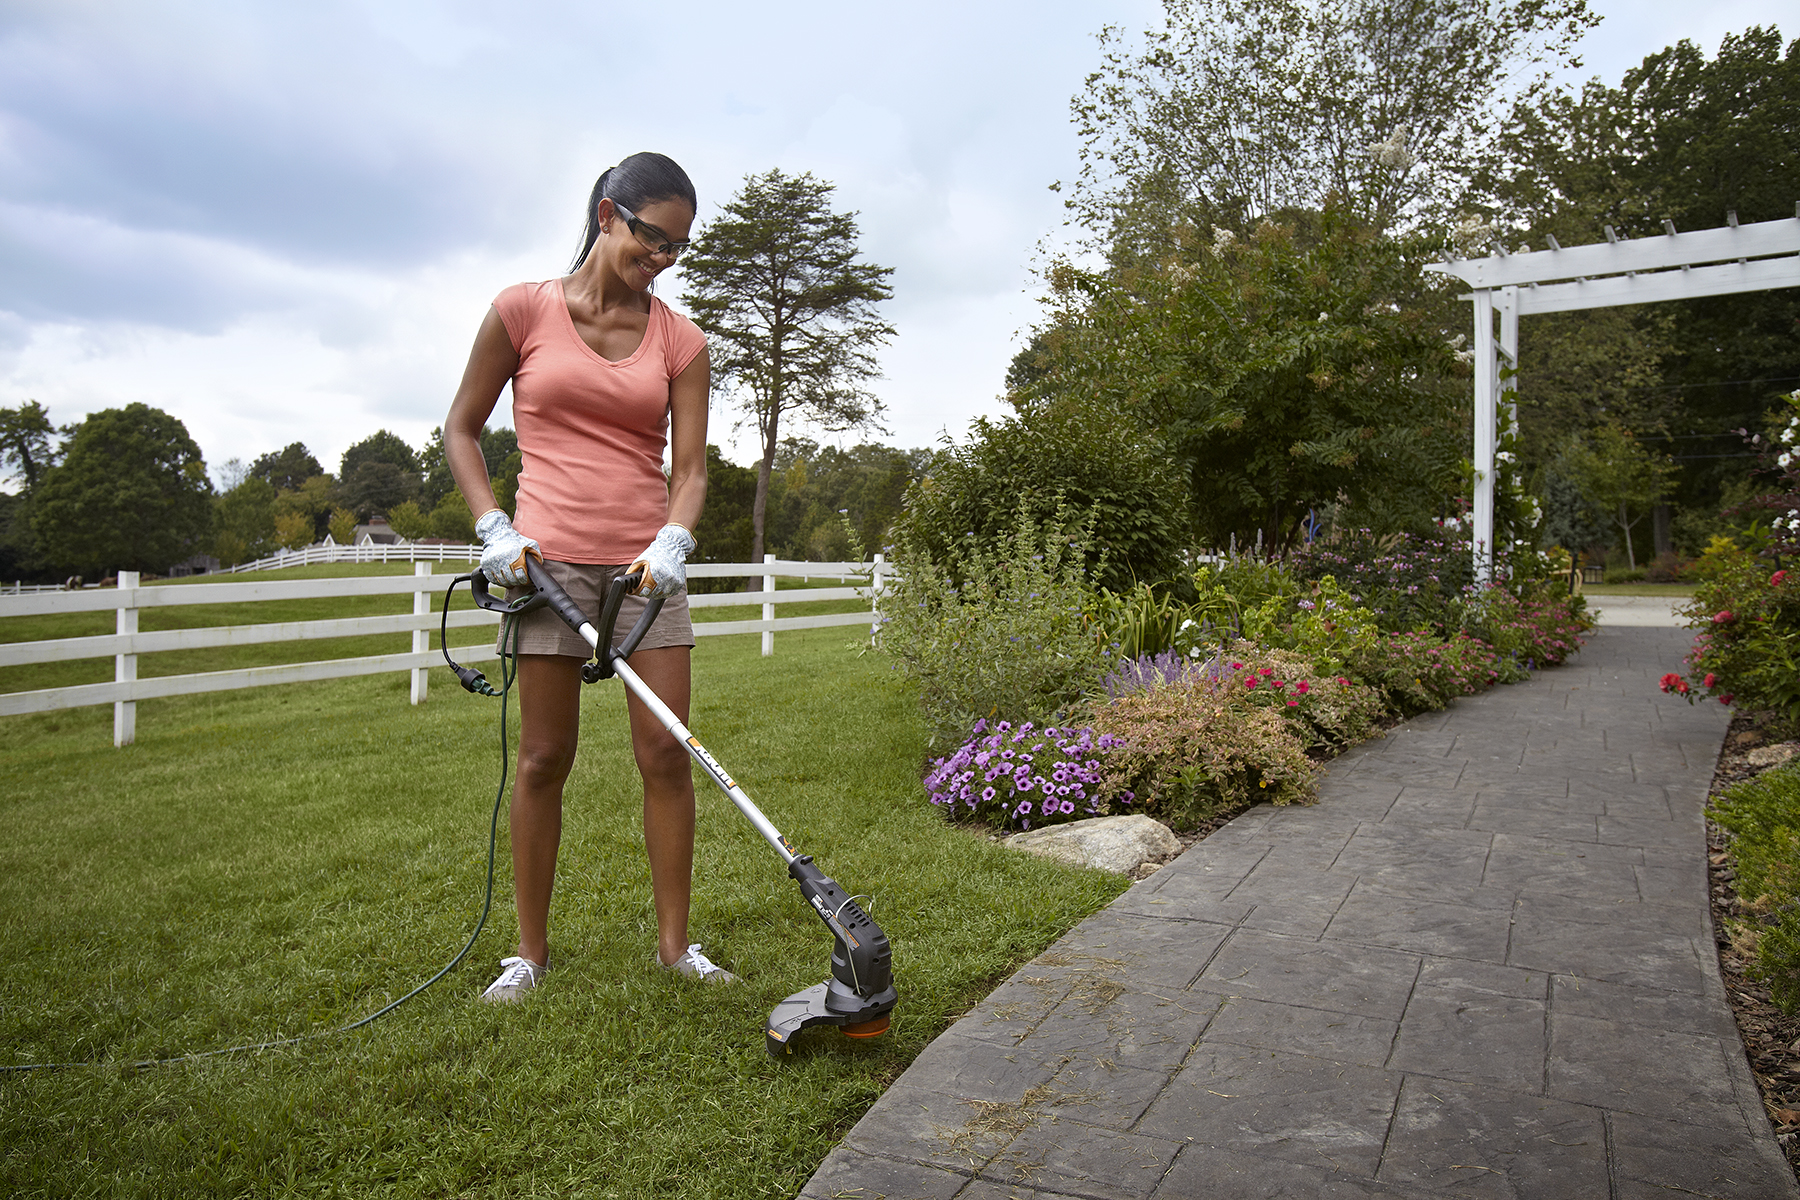 WORX Grass Trimmer WG116_Trimming